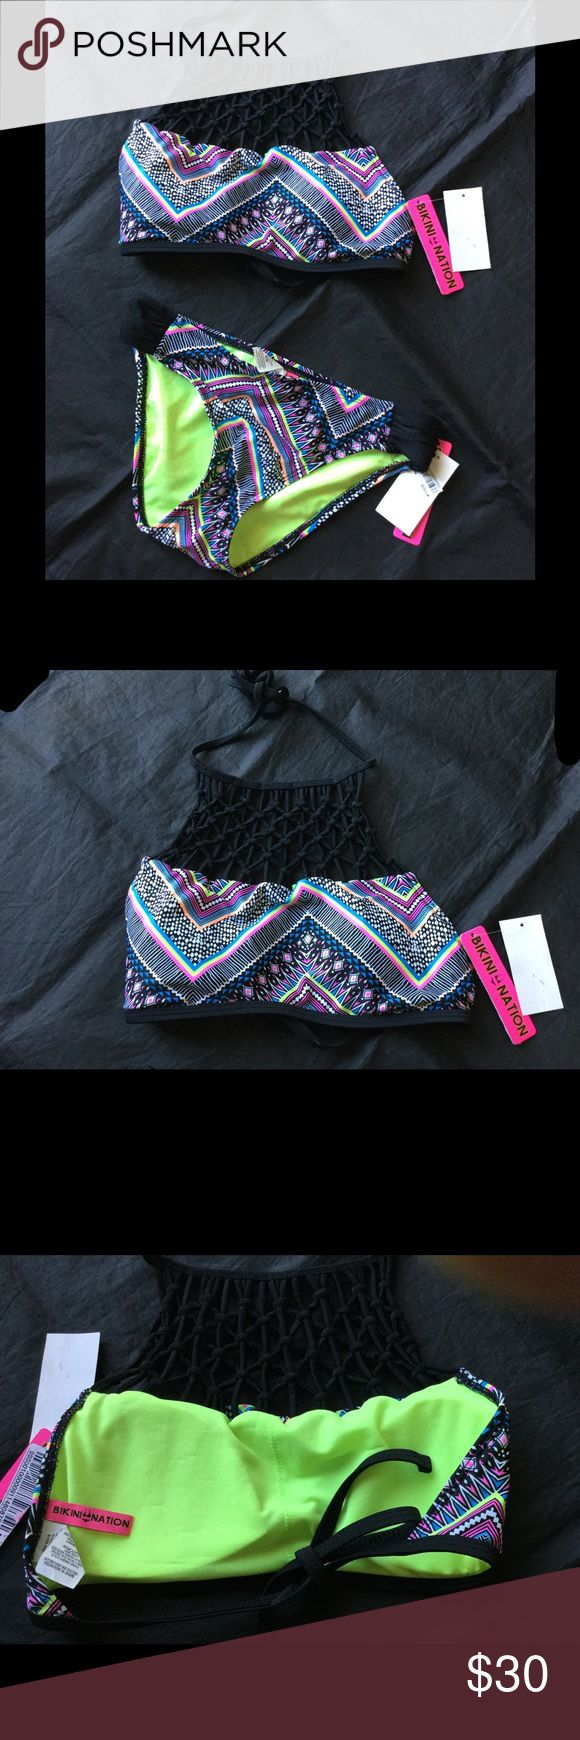 NWT Bikini Nation Fancy High Neck Bikini Swim Suit Lined bust with removable soft pads. Self tie at neck and back. Fully lined bikini bottoms. Brand new with tags. Color. Black multi. Bikini Nation Swim Bikinis